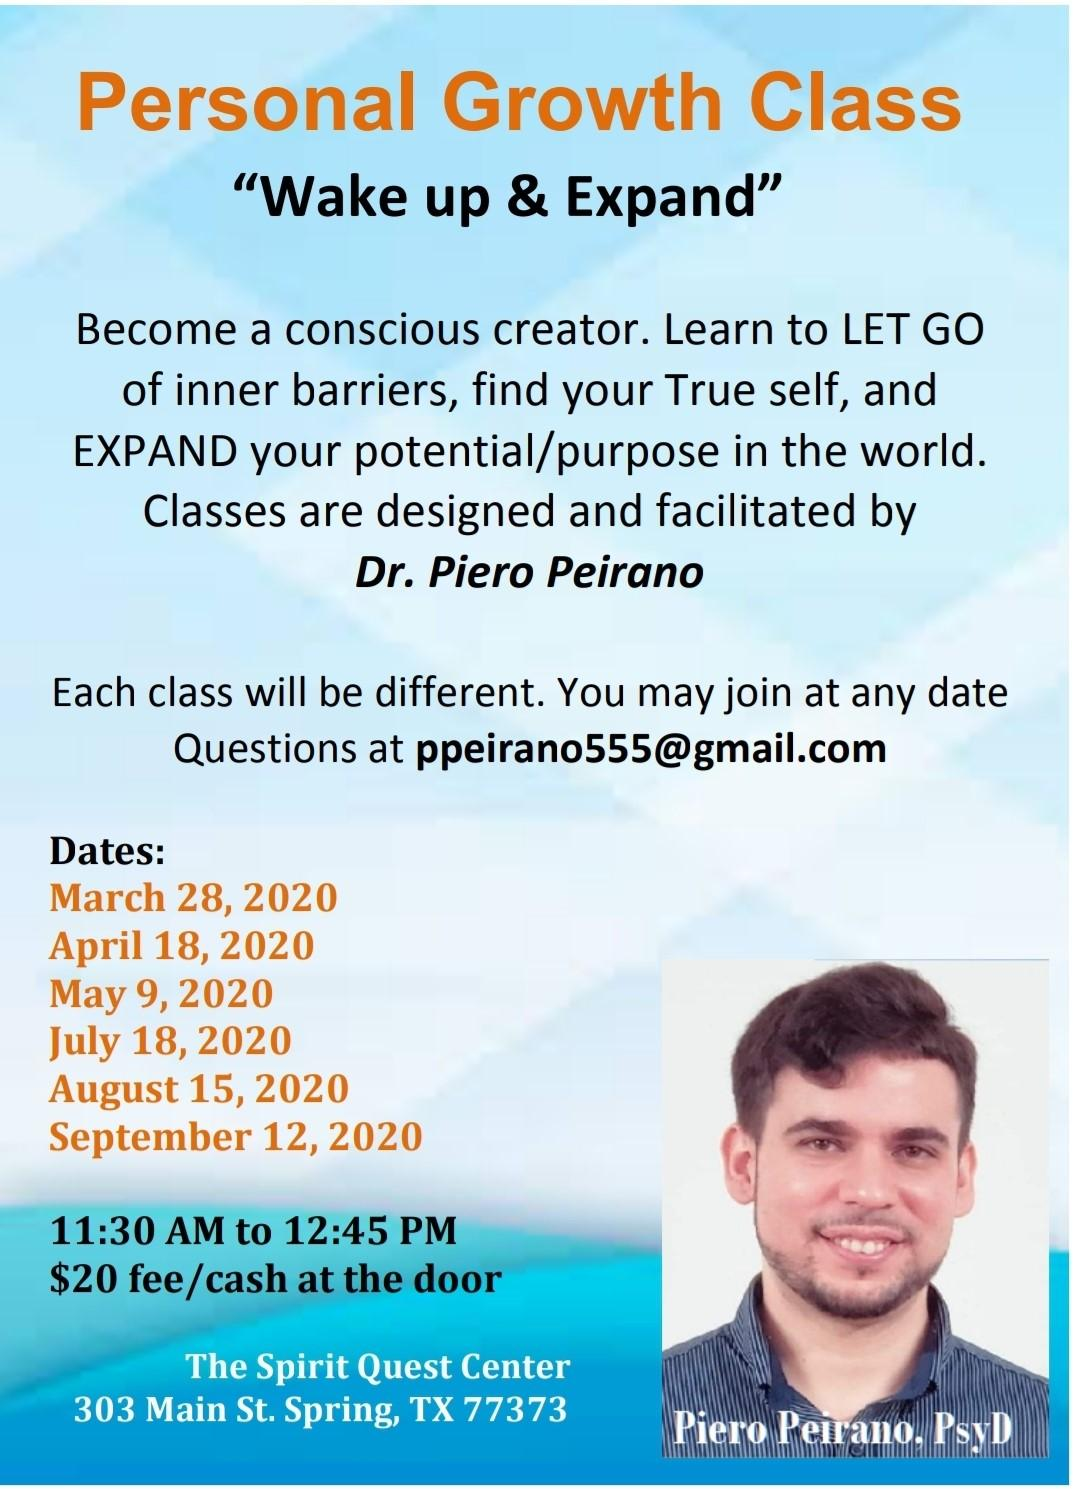 Personal Growth Class: Wake Up & Expand